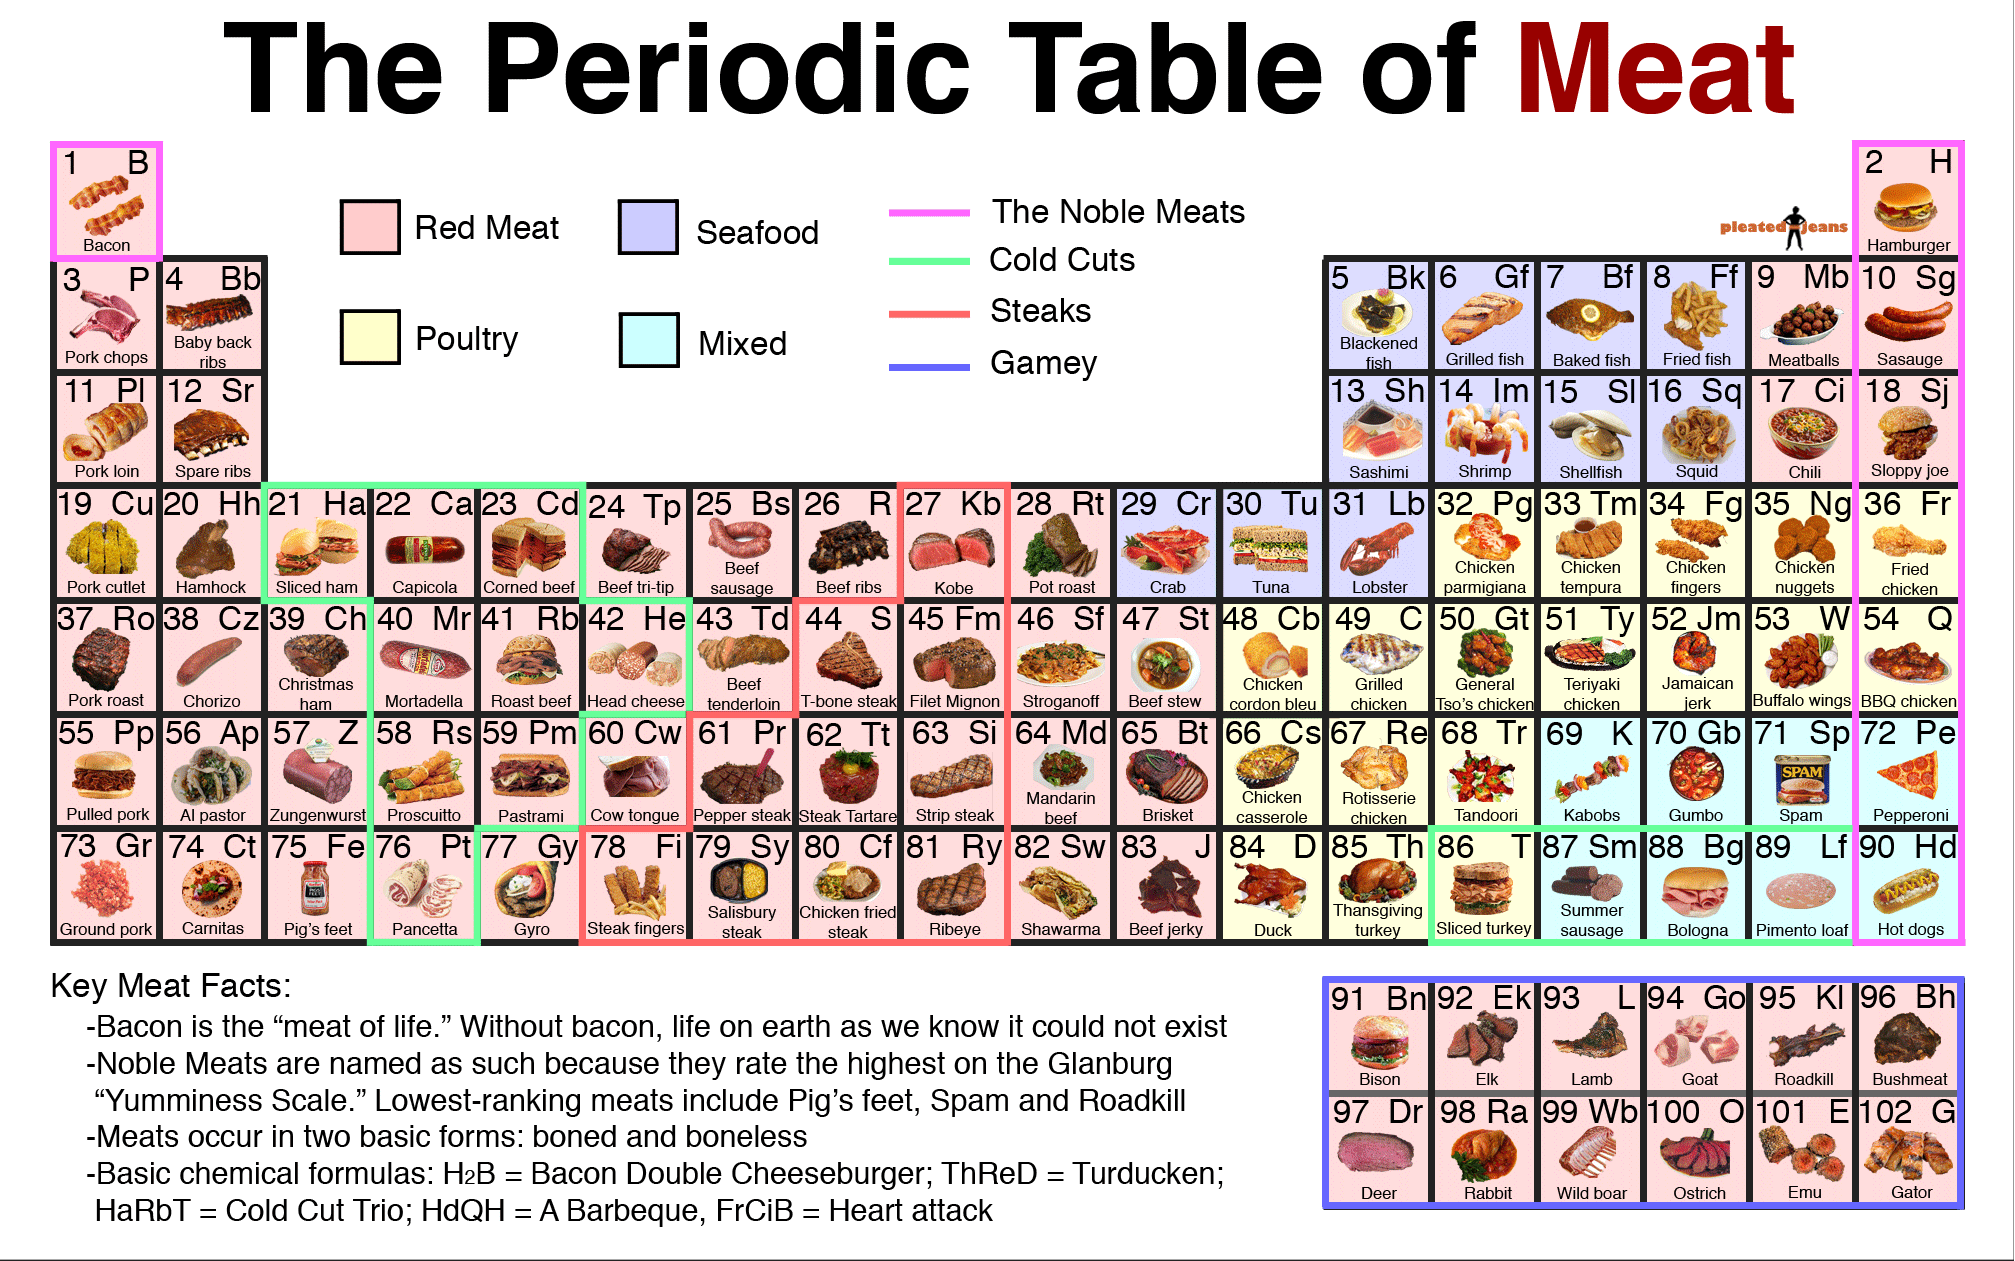 The Periodic Table Meat IMAGE